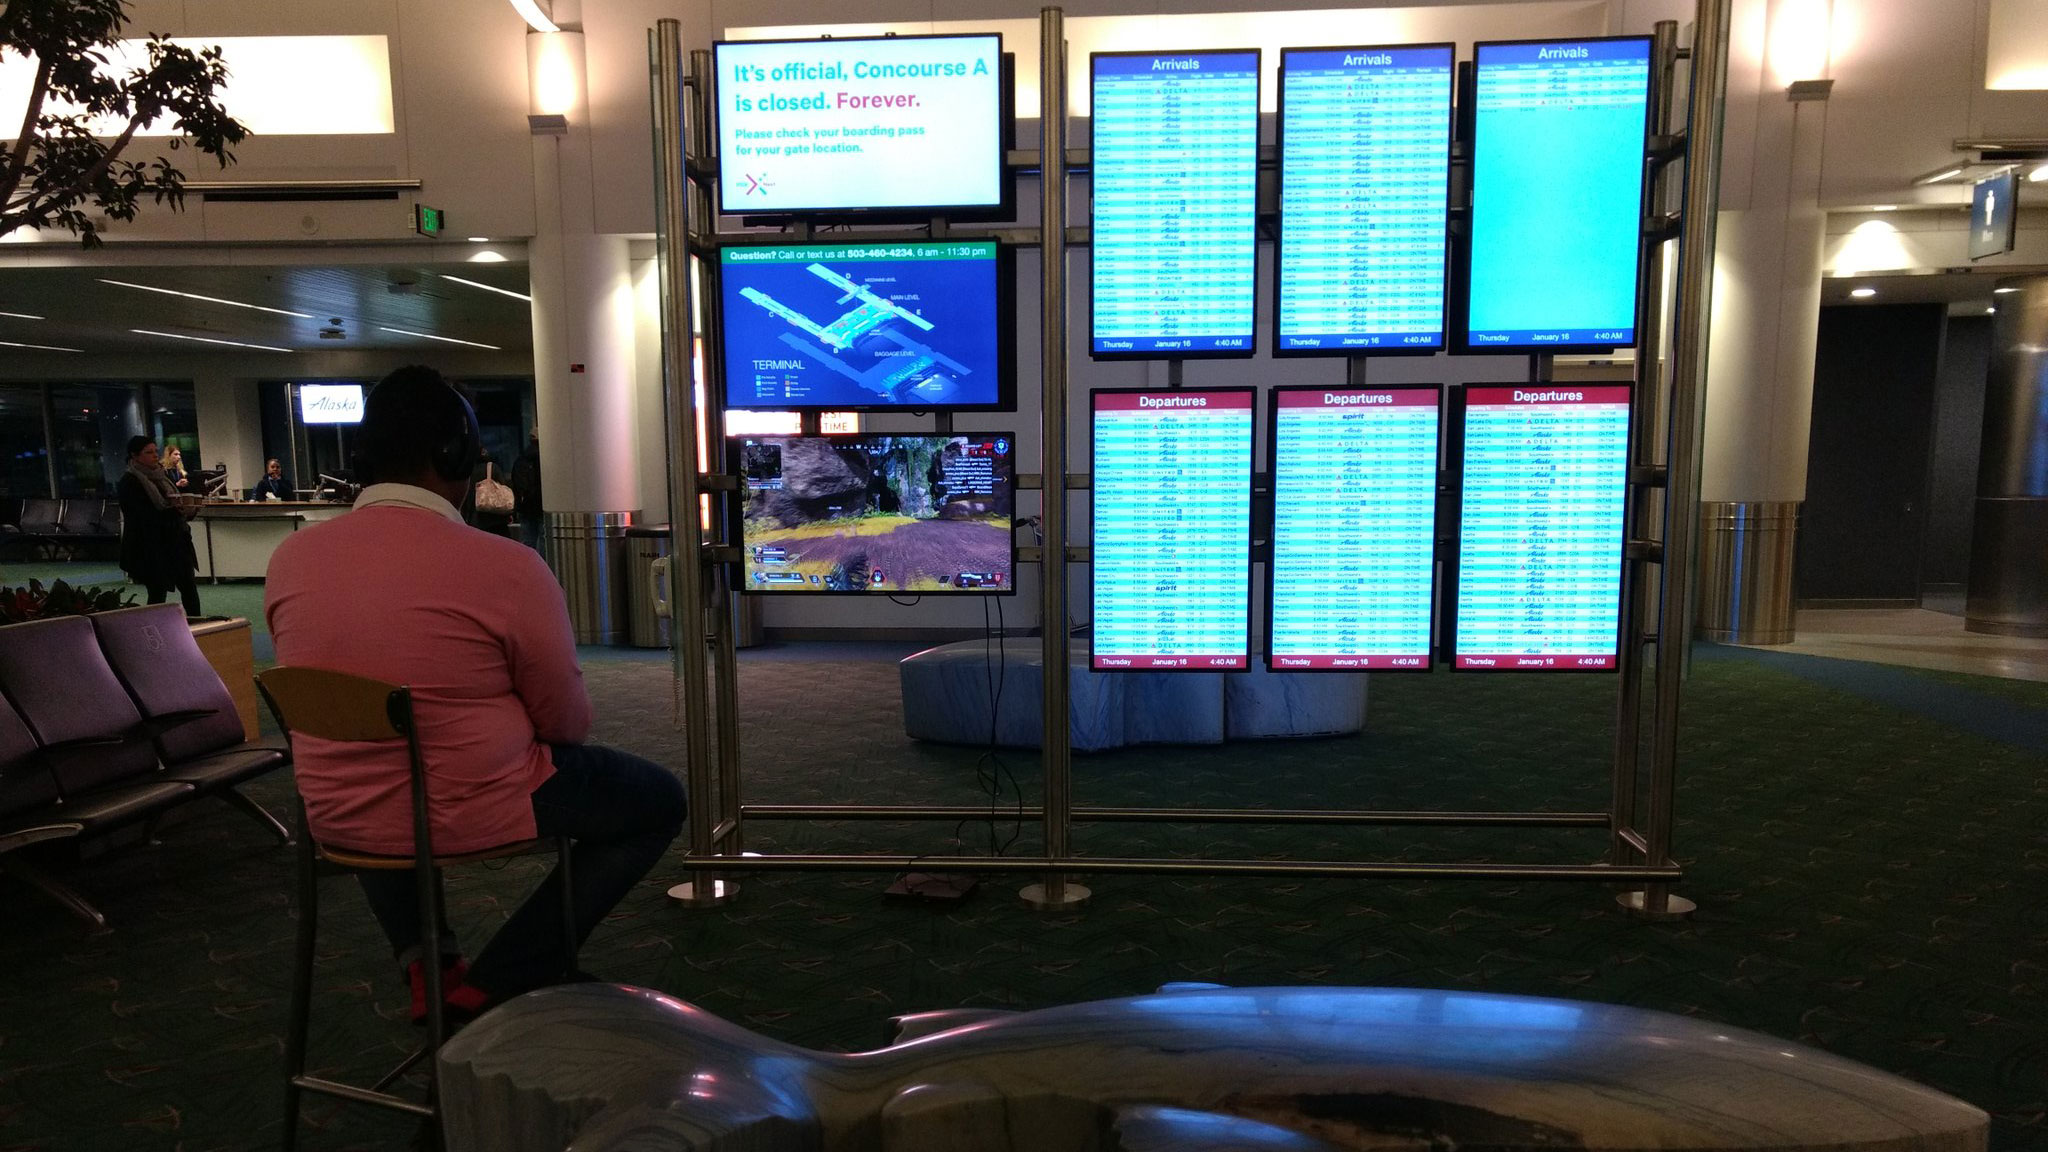 A man took over an airport monitor to play video games until officials told him 'game over'